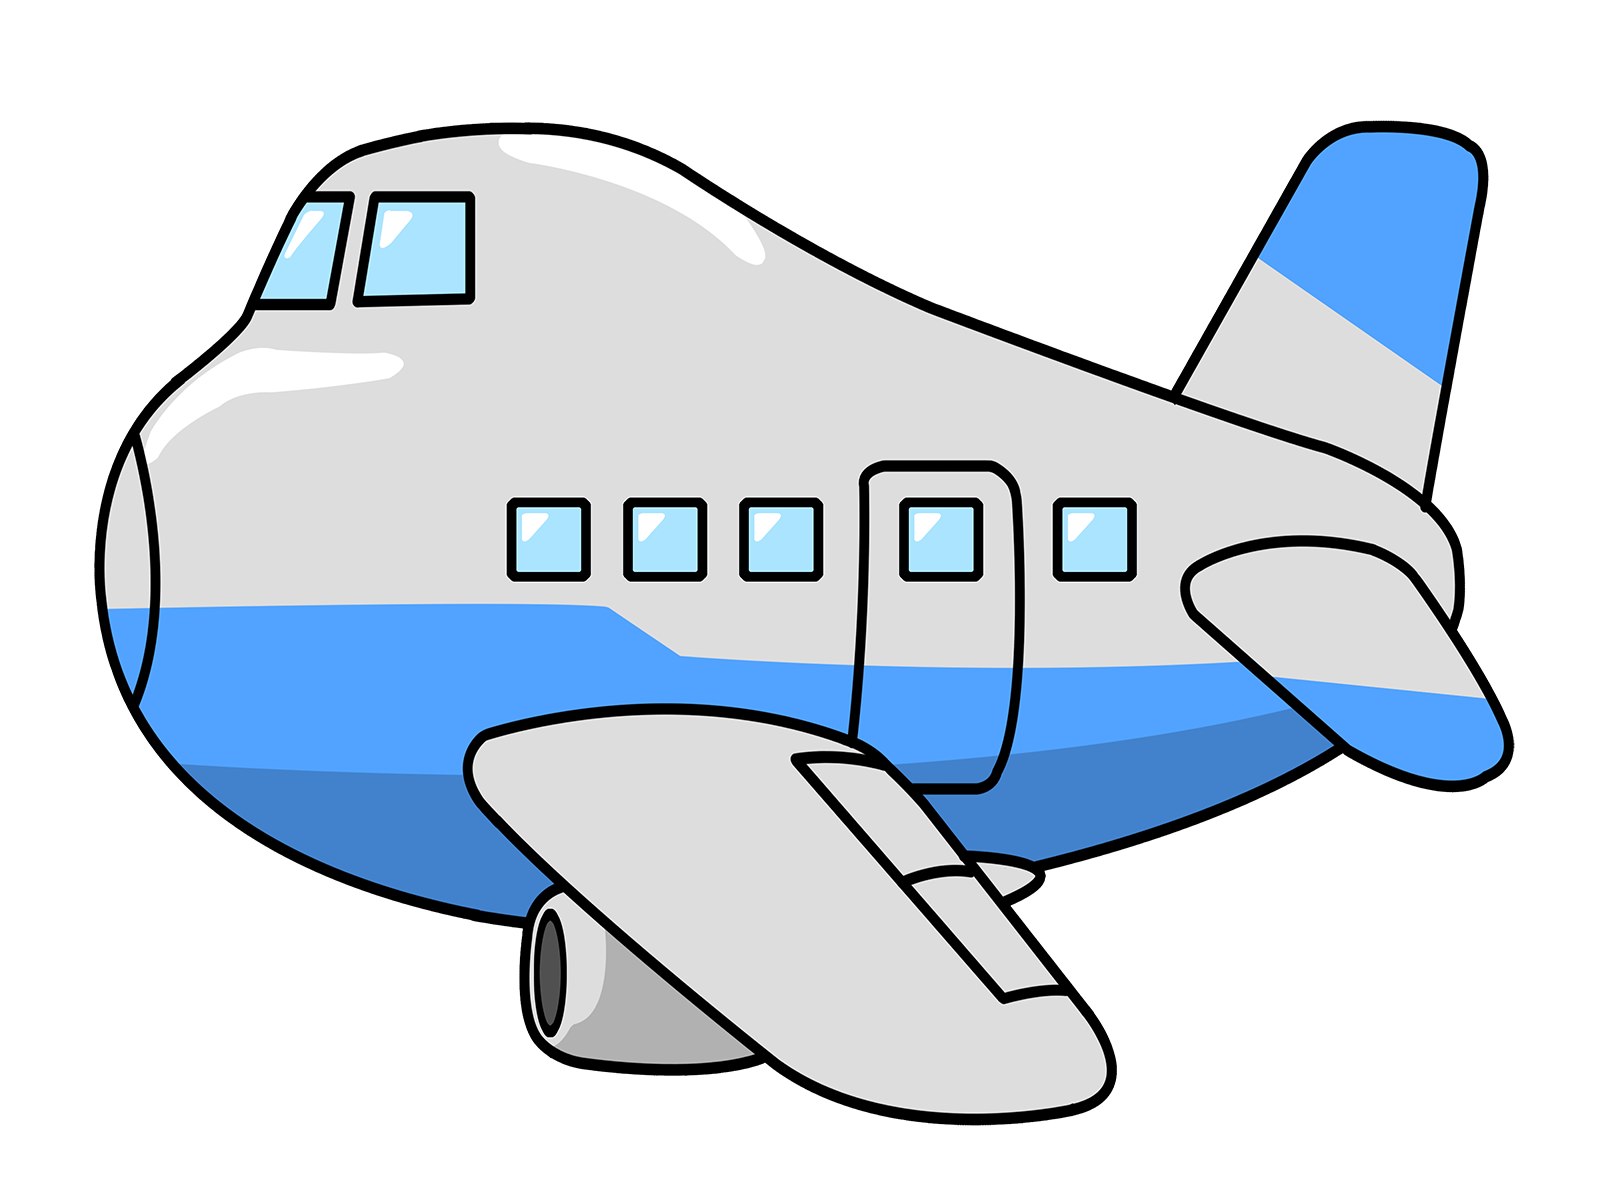 Free Giraffe In Plane Png - Plane clip art transparent library - RR collections